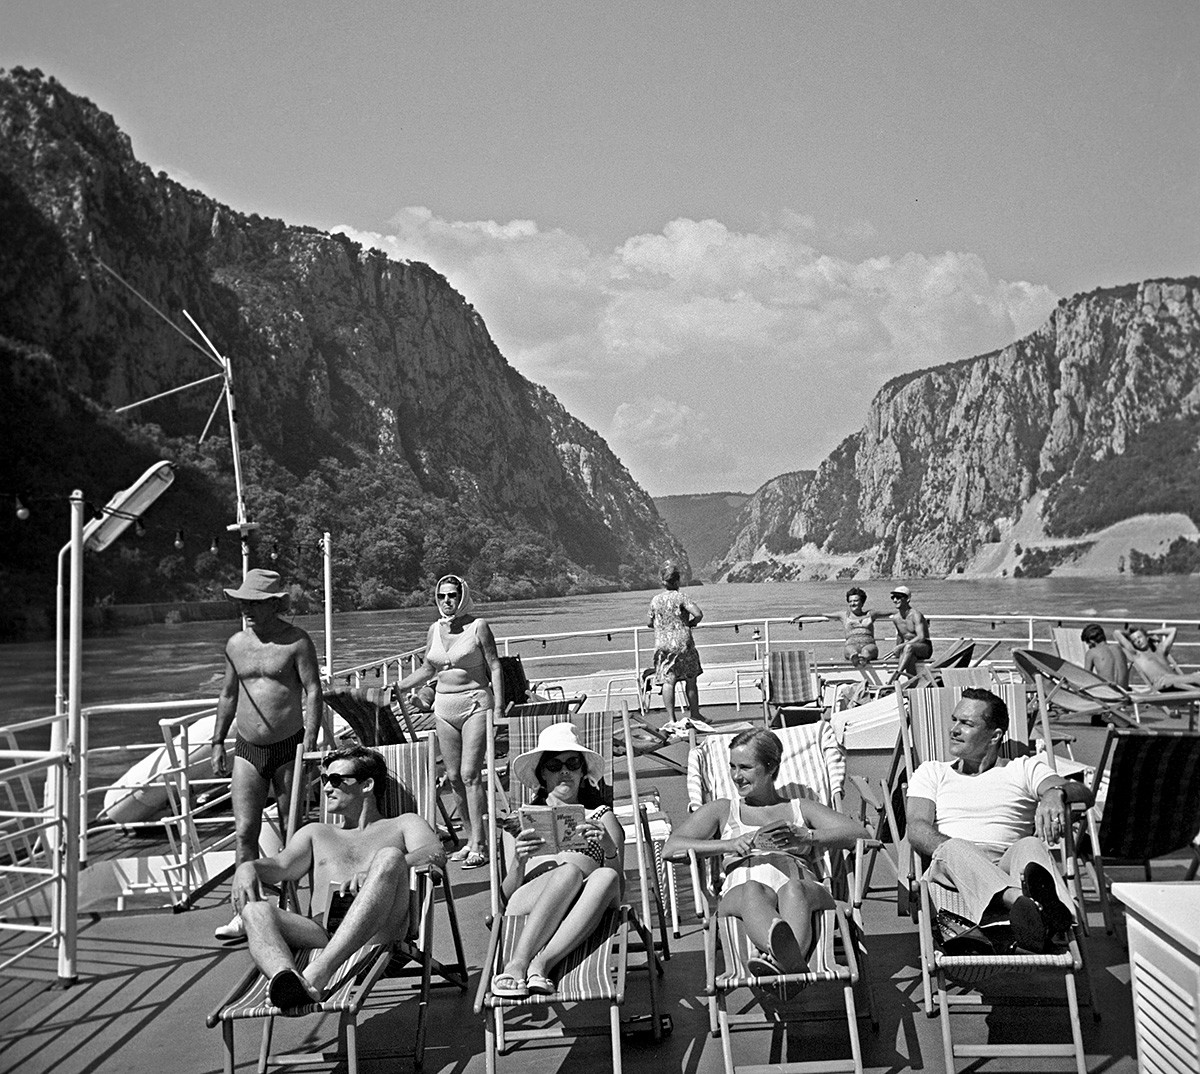 Tourists on the deck of a ship on the Danube, 1969